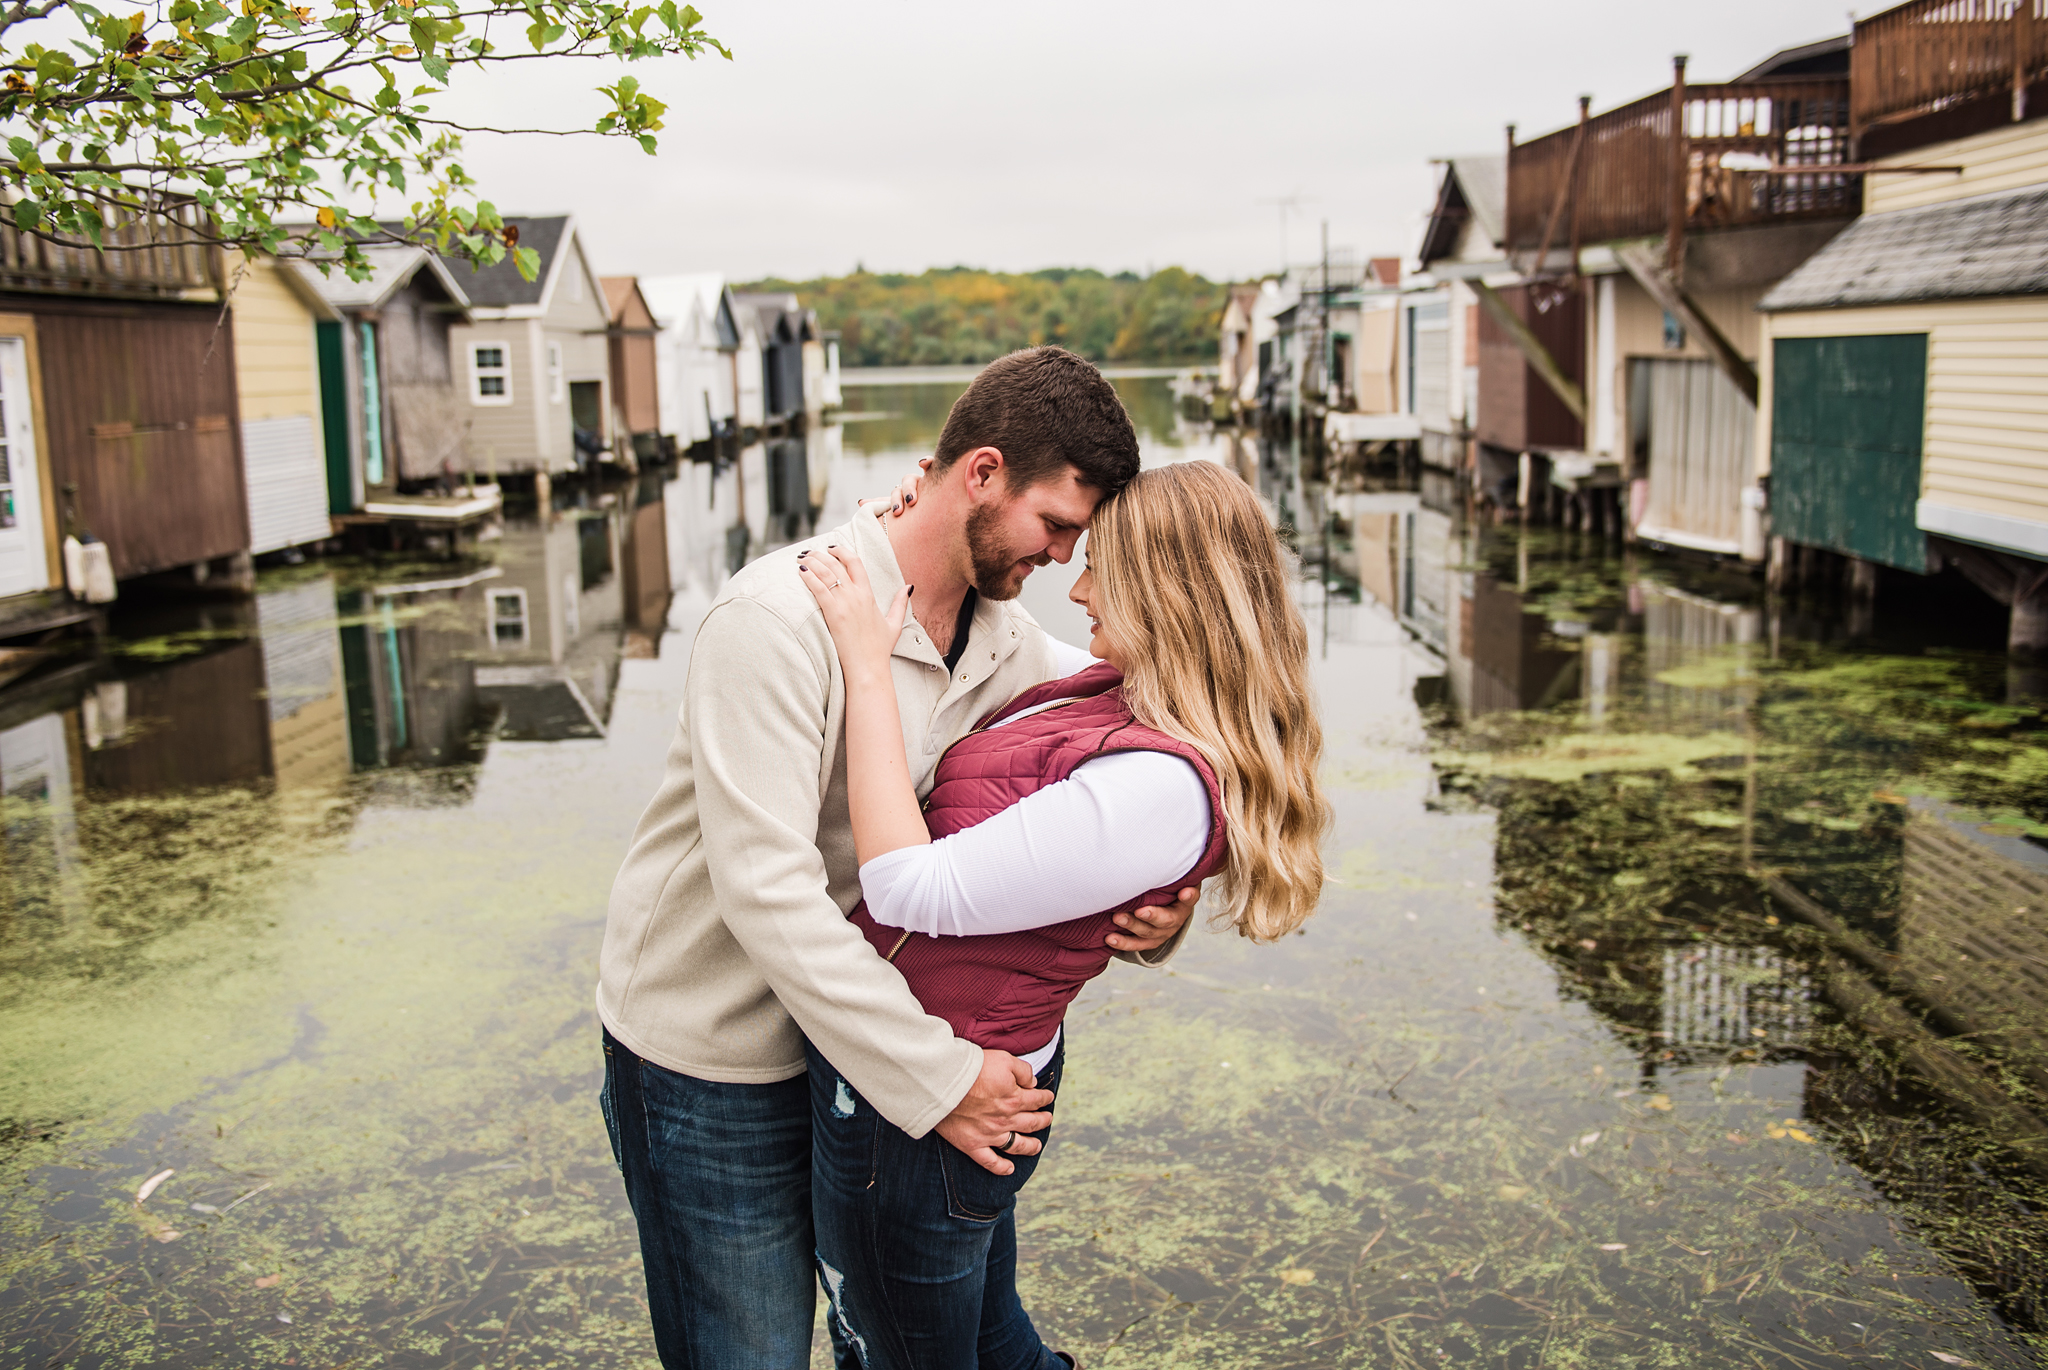 Kershaw_Park_Canandaigua_City_Pier_Finger_Lakes_Engagement_Session_JILL_STUDIO_Rochester_NY_Photographer_DSC_1520.jpg